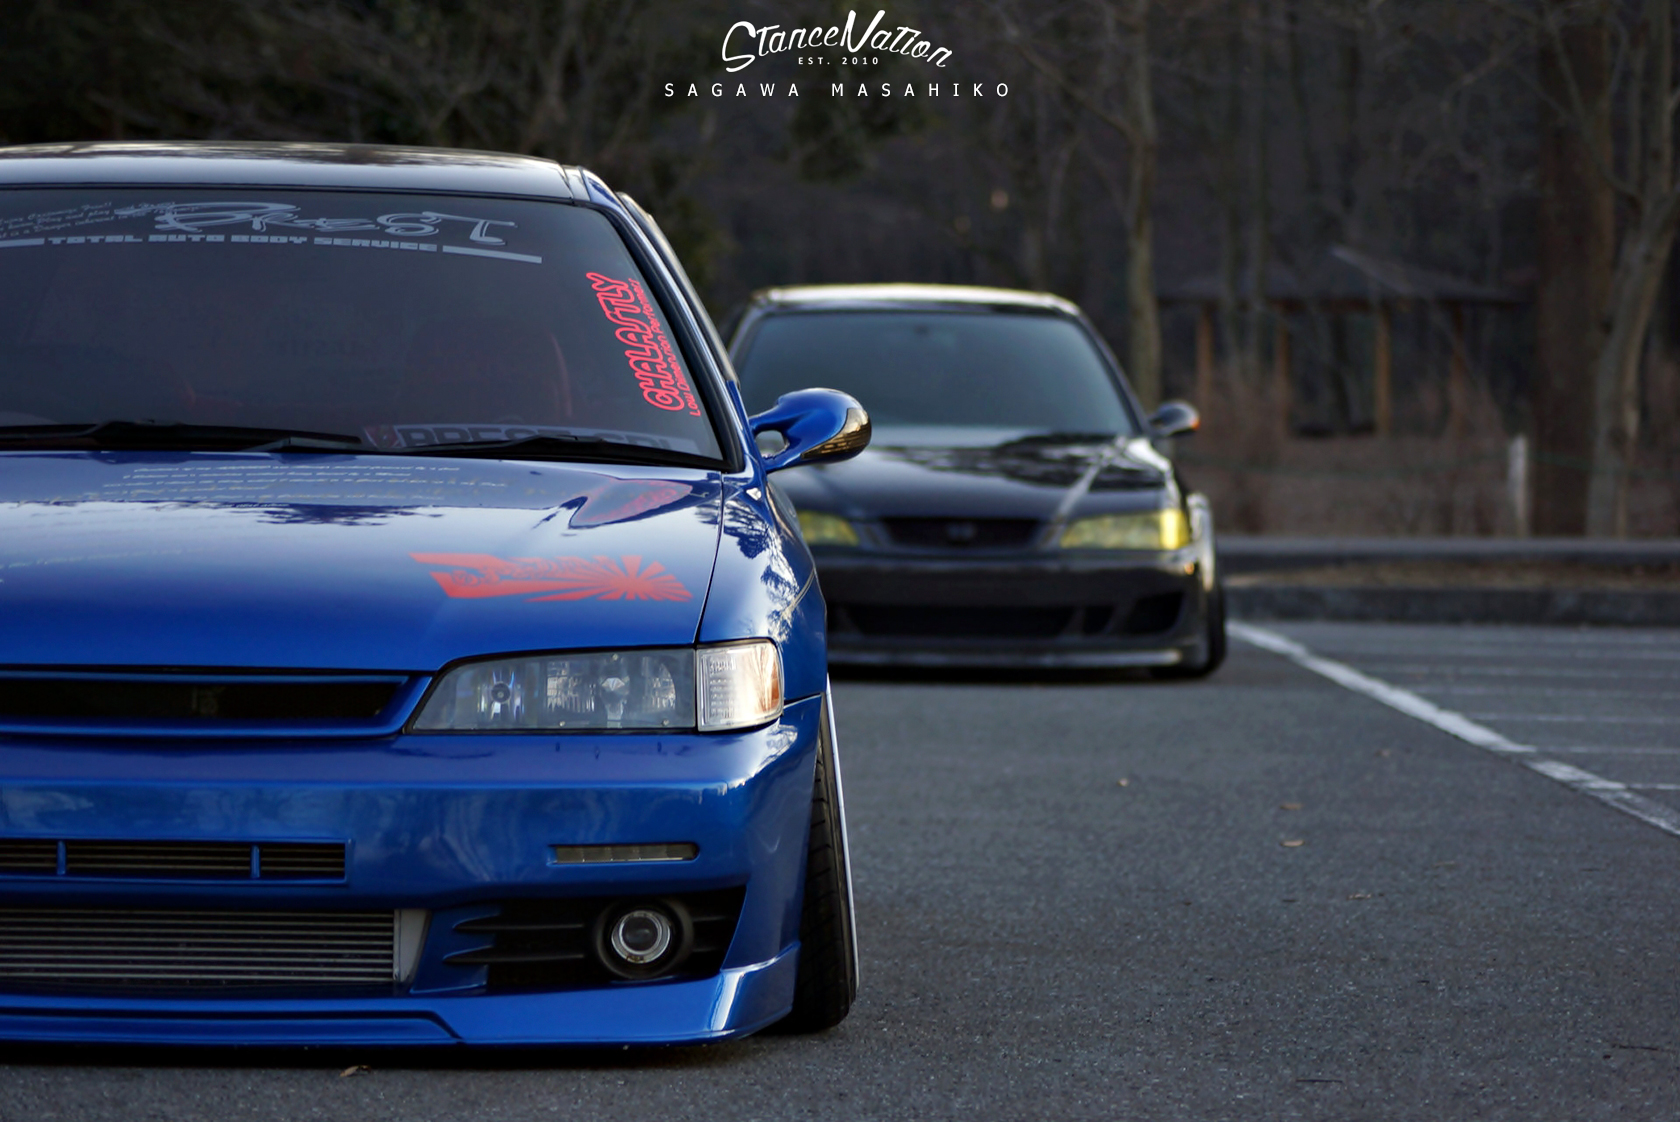 team lastly   typical accords stancenation form function